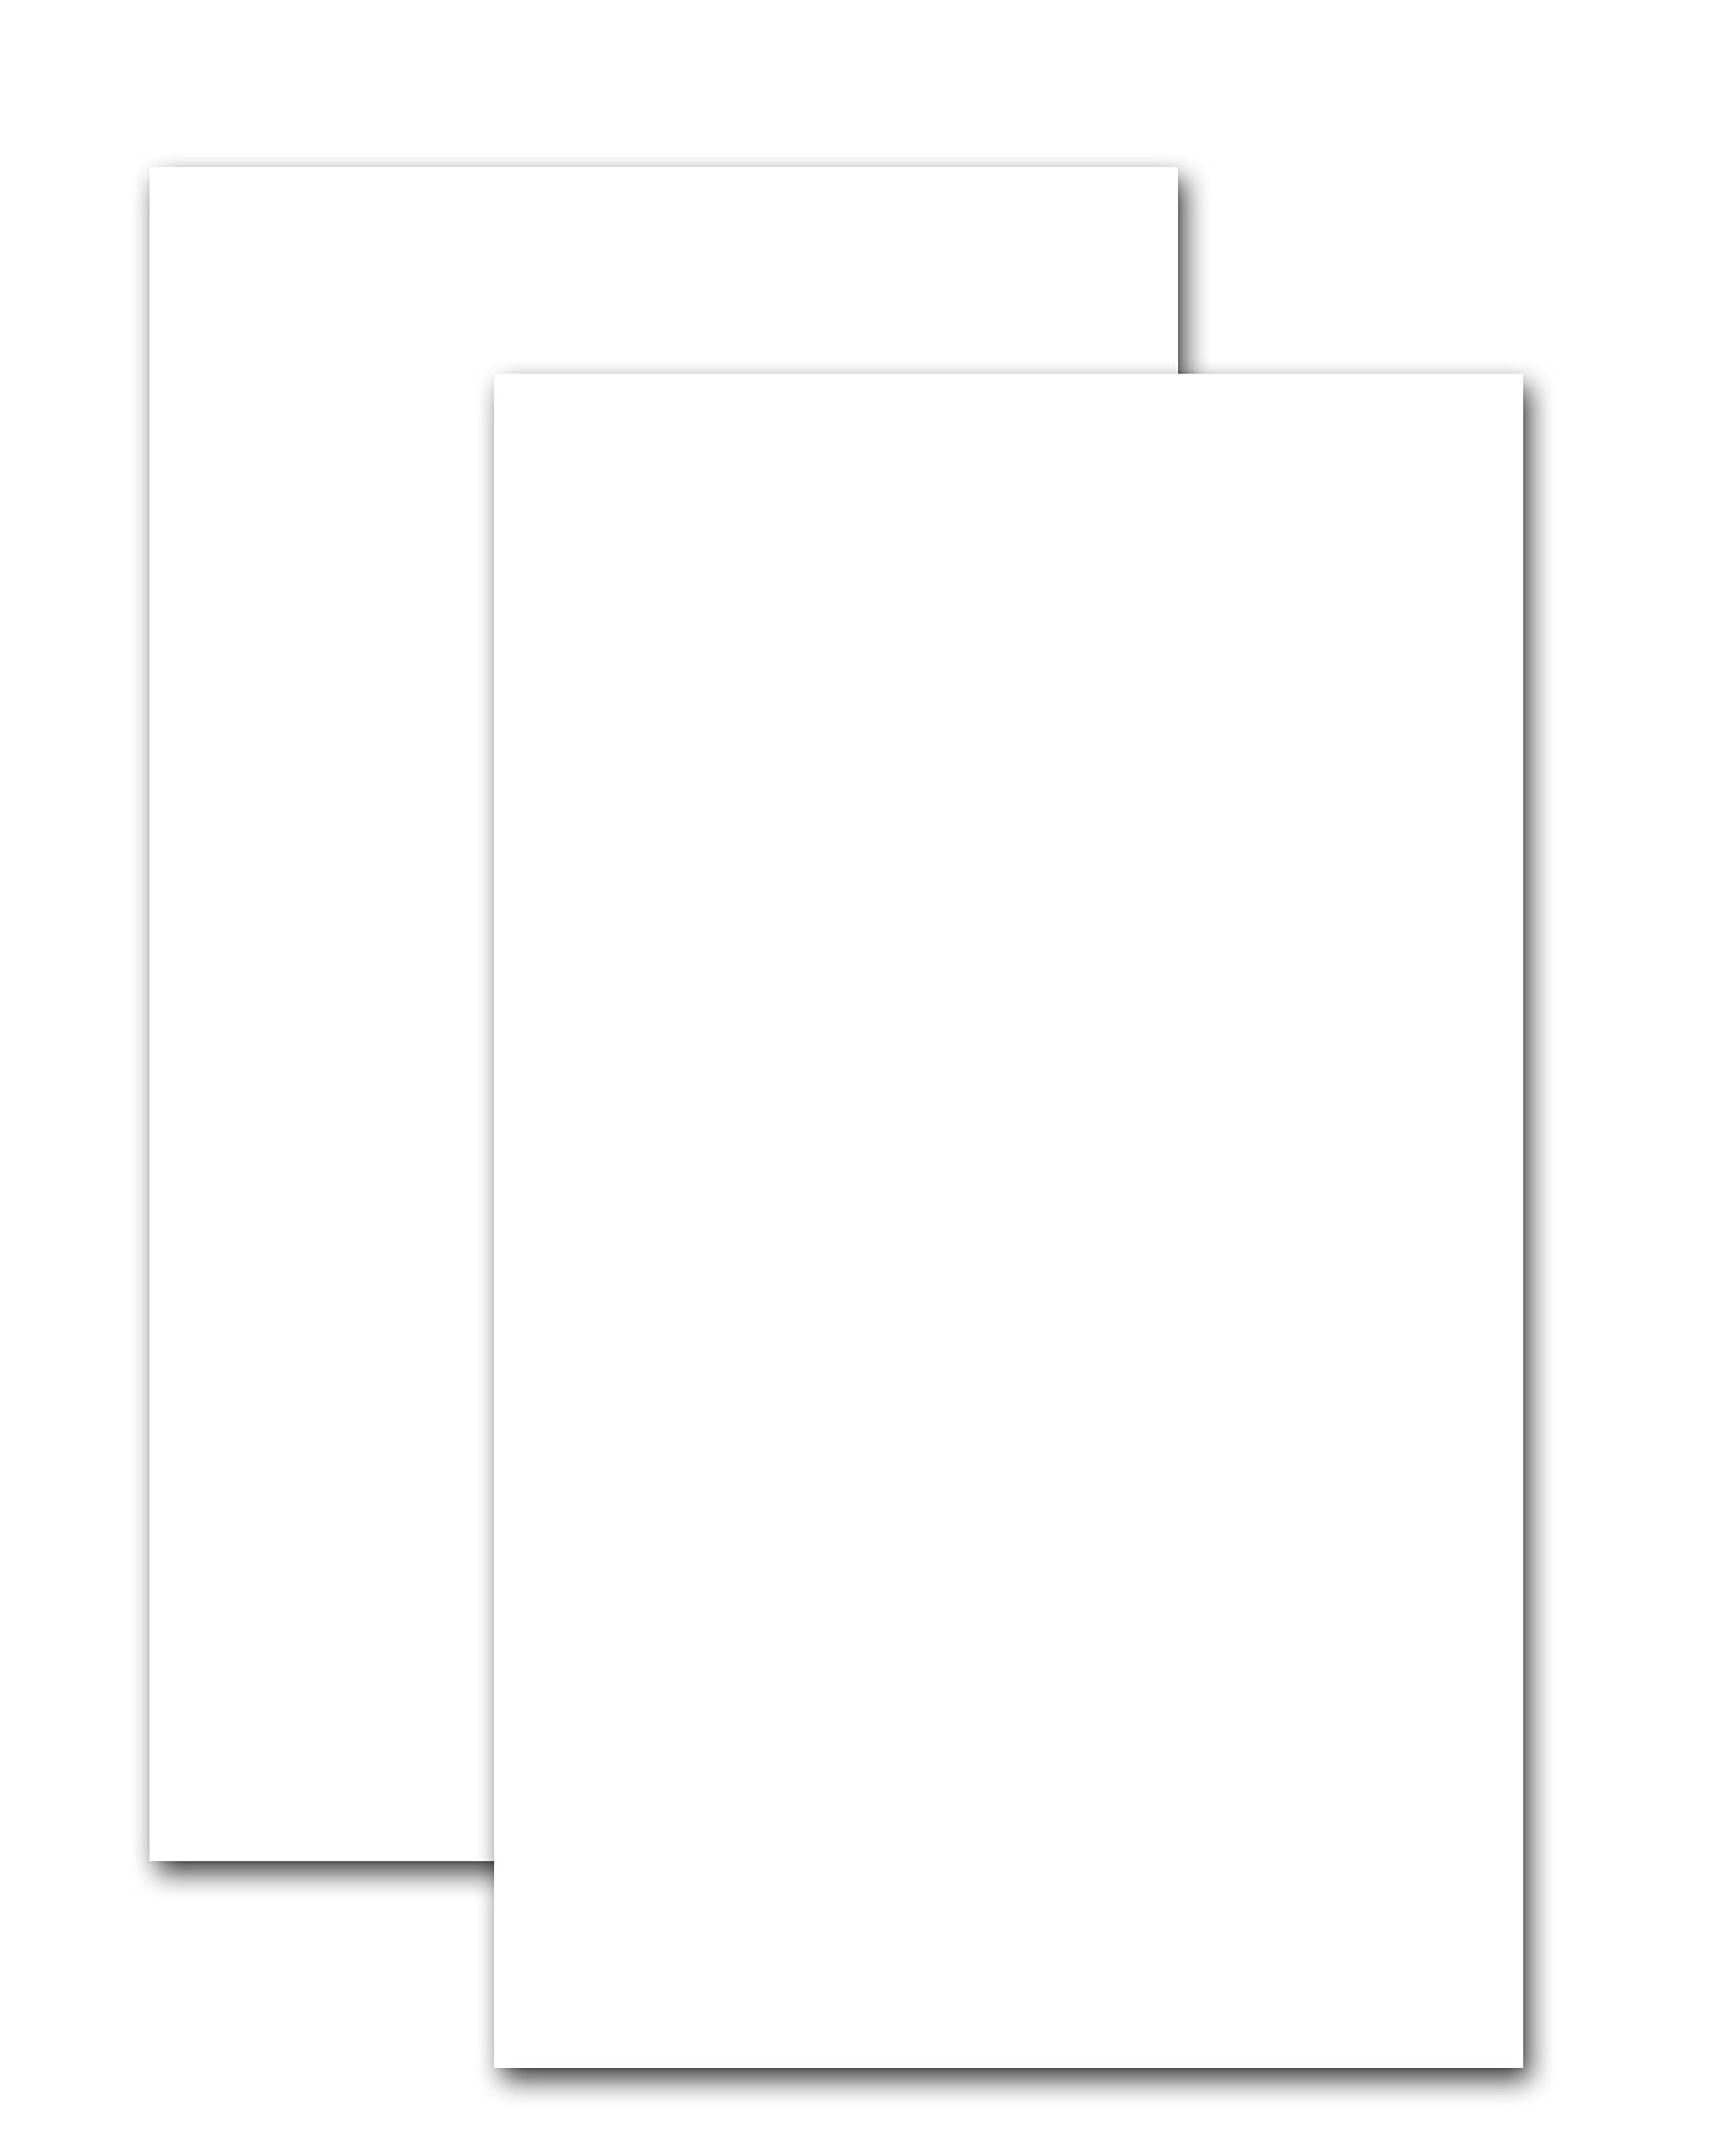 Premium Natural Card Stock 100# Cover (270 gsm) - Heavyweight 8.5'' x 14'' inches - Pack of 50 Sheets - Office Crafts and More.